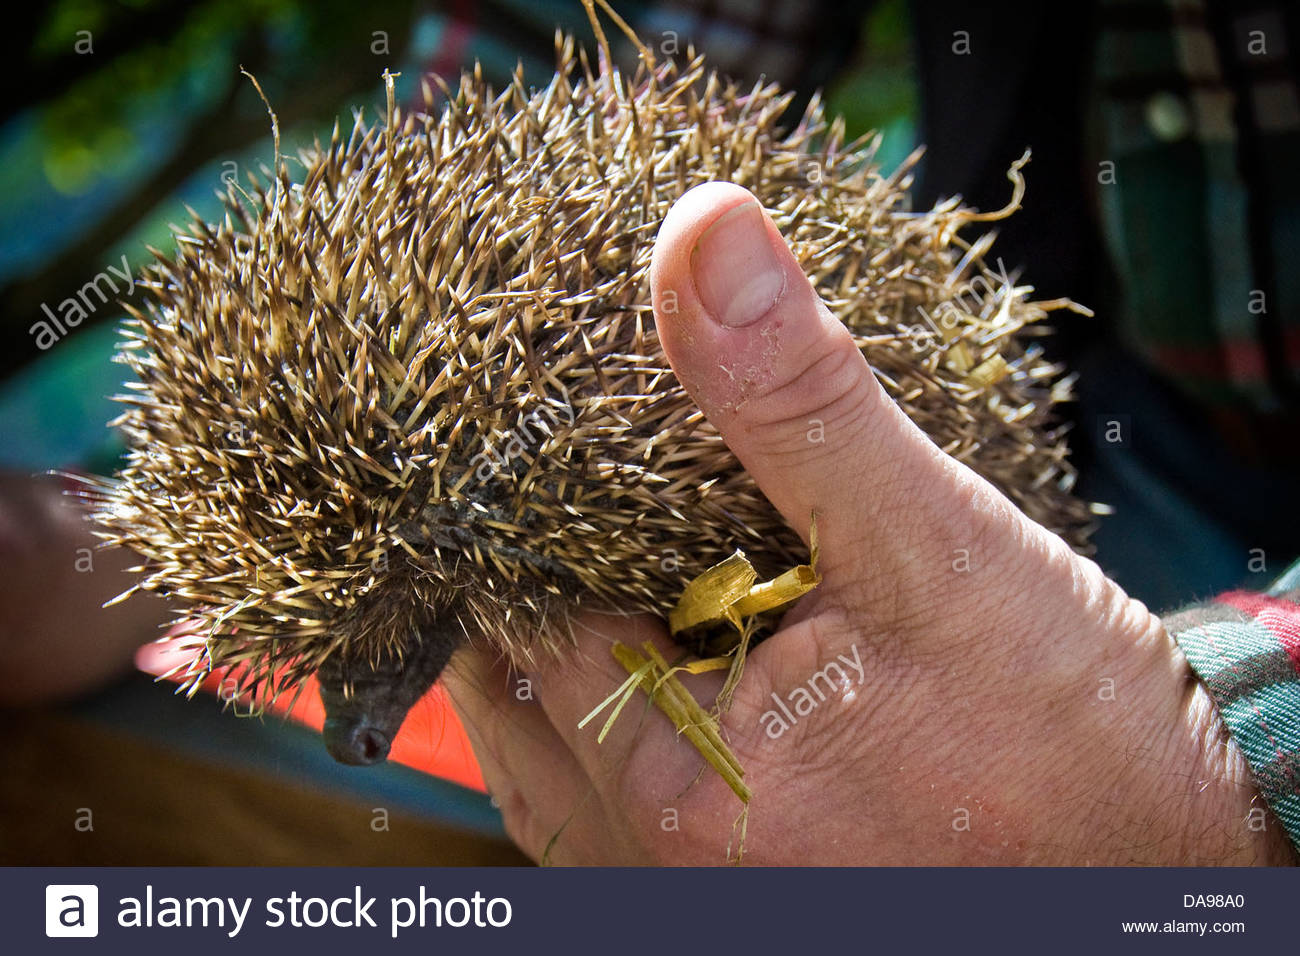 Switzerland,Canton Ticino,Maggia,Hedgehog Recovery Center - Stock Image